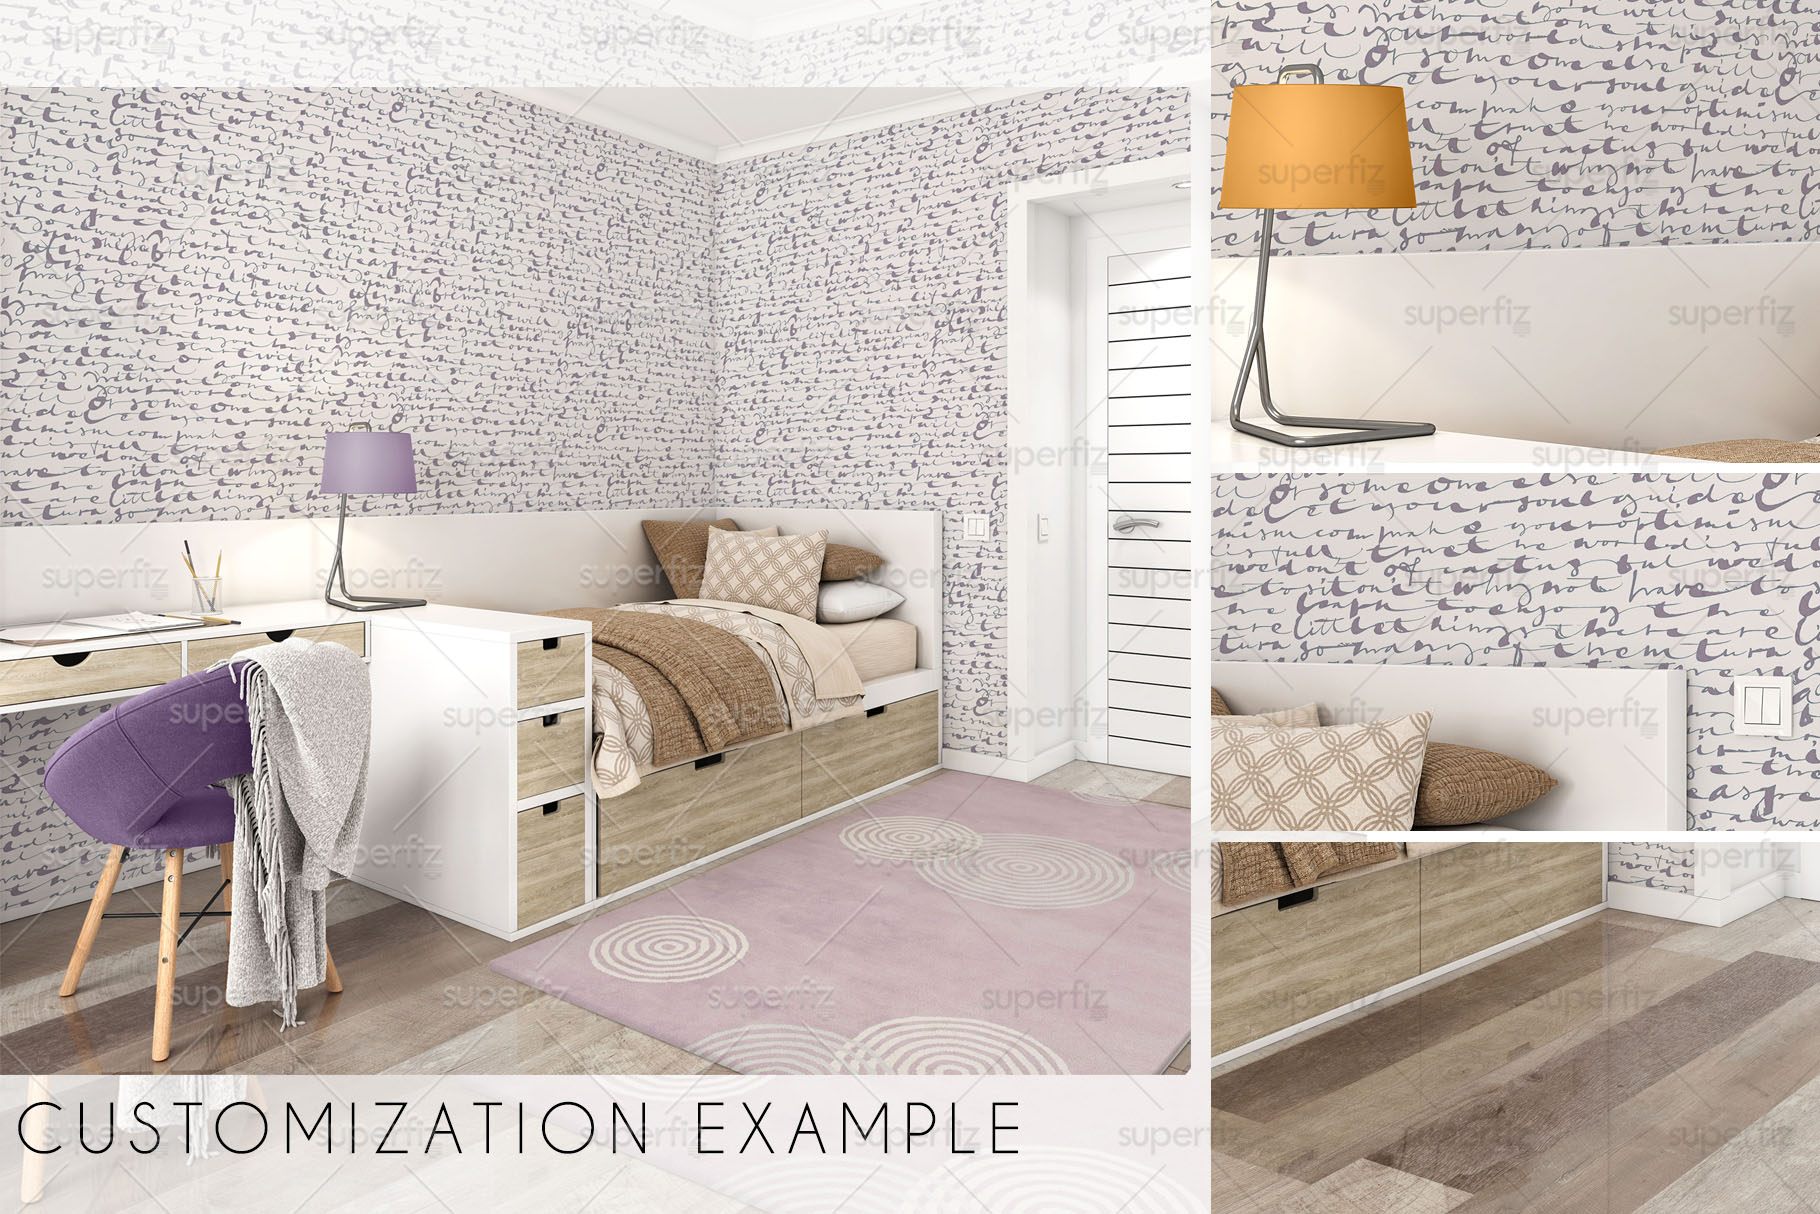 Wallpaper, floor and carpet Mockup Kids Bedroom SM62 example image 6